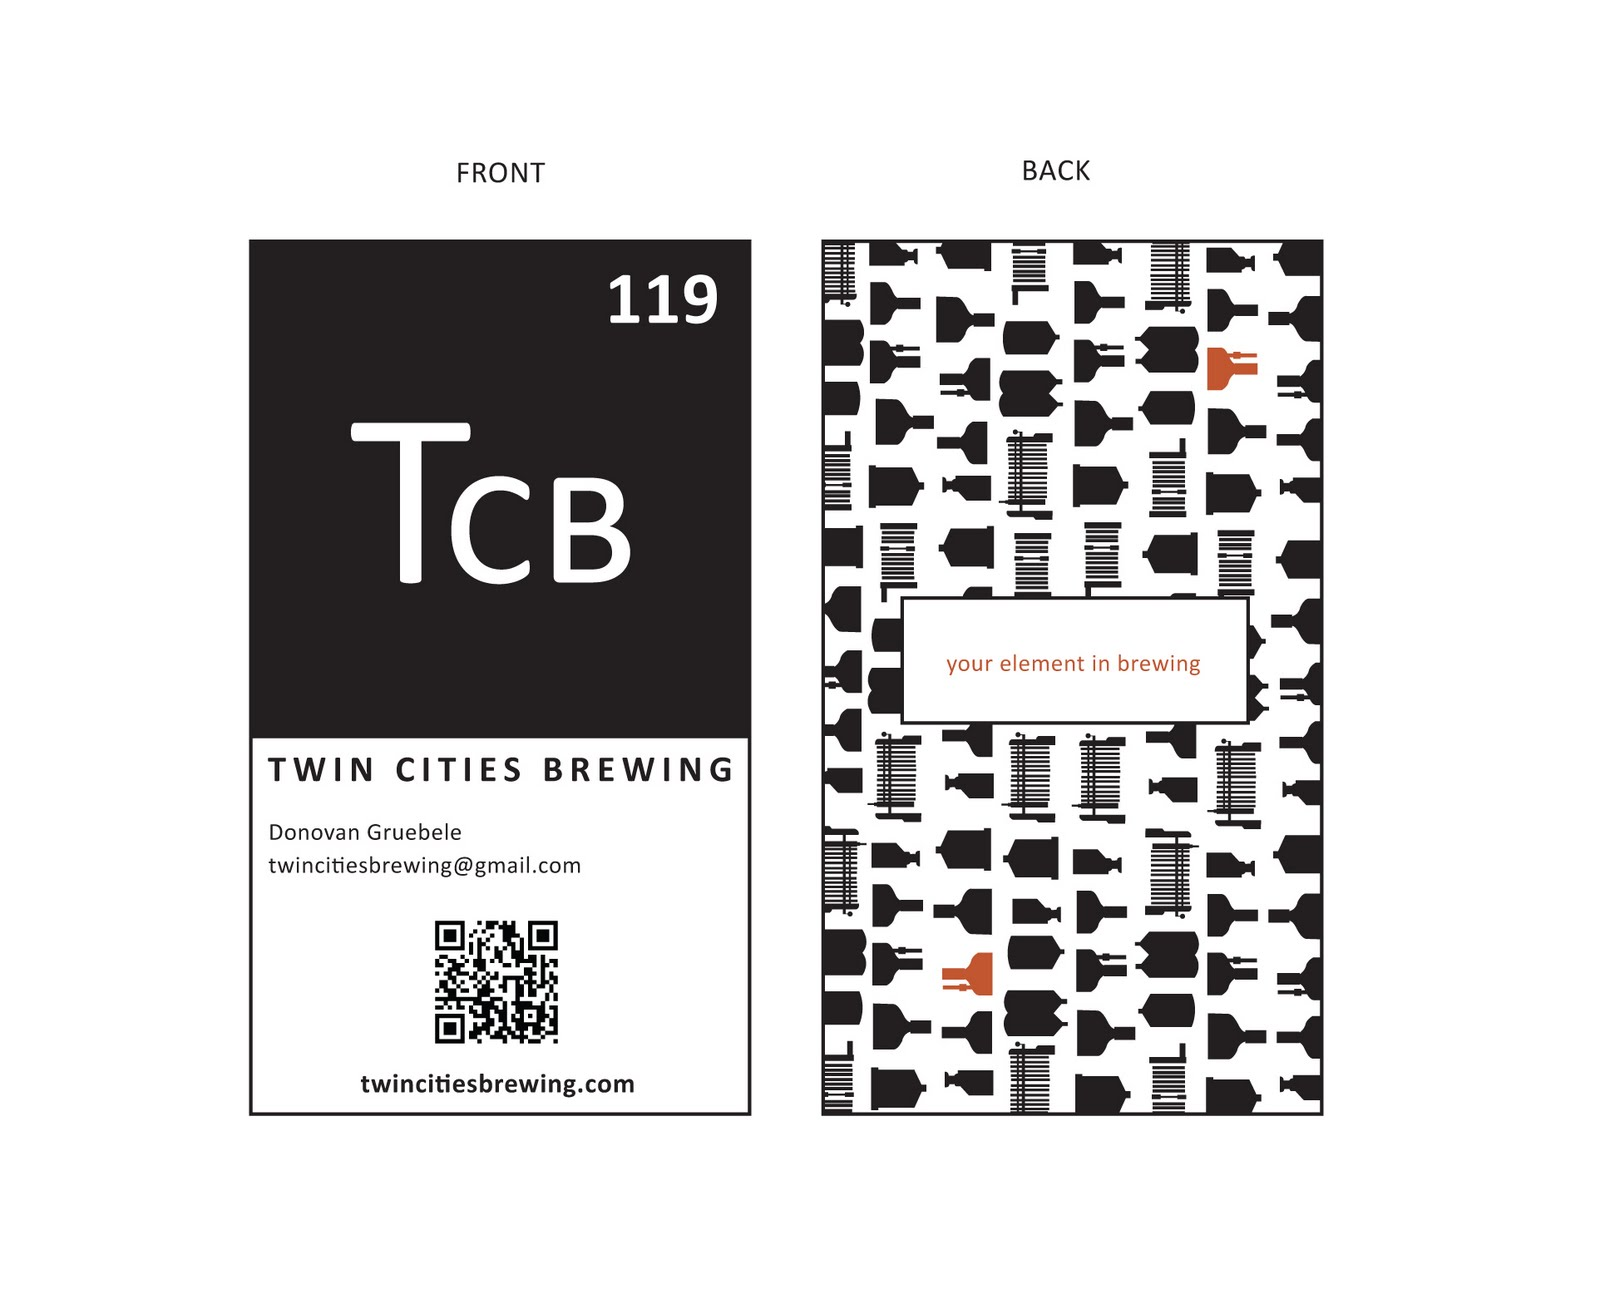 Chris bruns design heres an idea i had for the the business card for twin cities brewing for the front i wanted to keep with the visual style of the periodic element square reheart Image collections